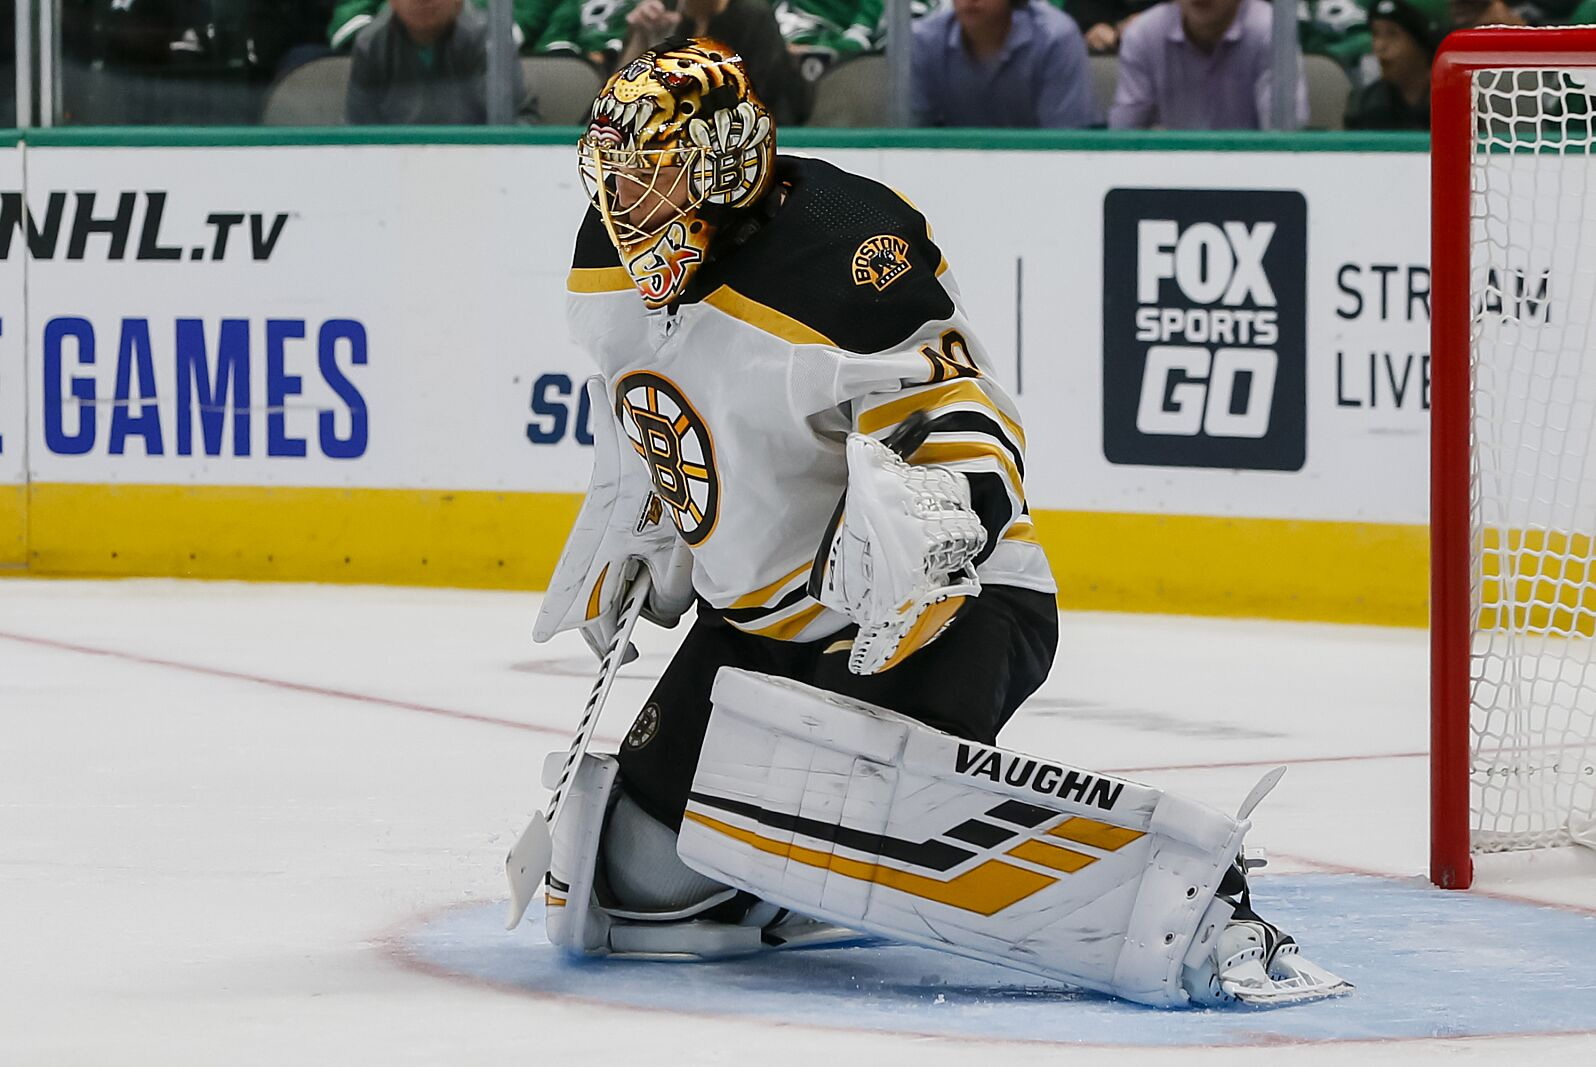 Boston Bruins: Who's hot and who's not in the first week?